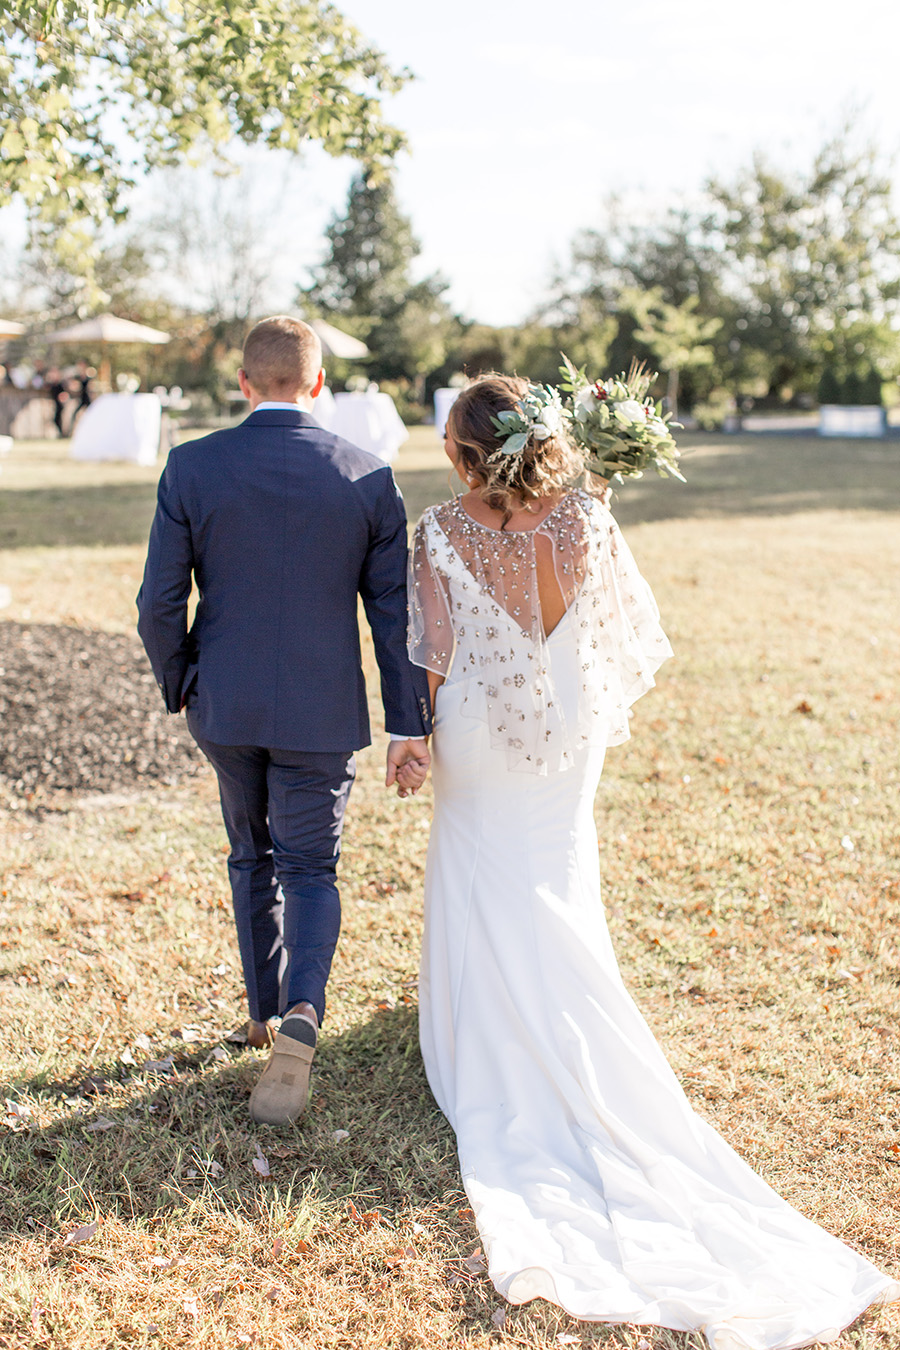 Bride and groom walk together after wedding ceremony